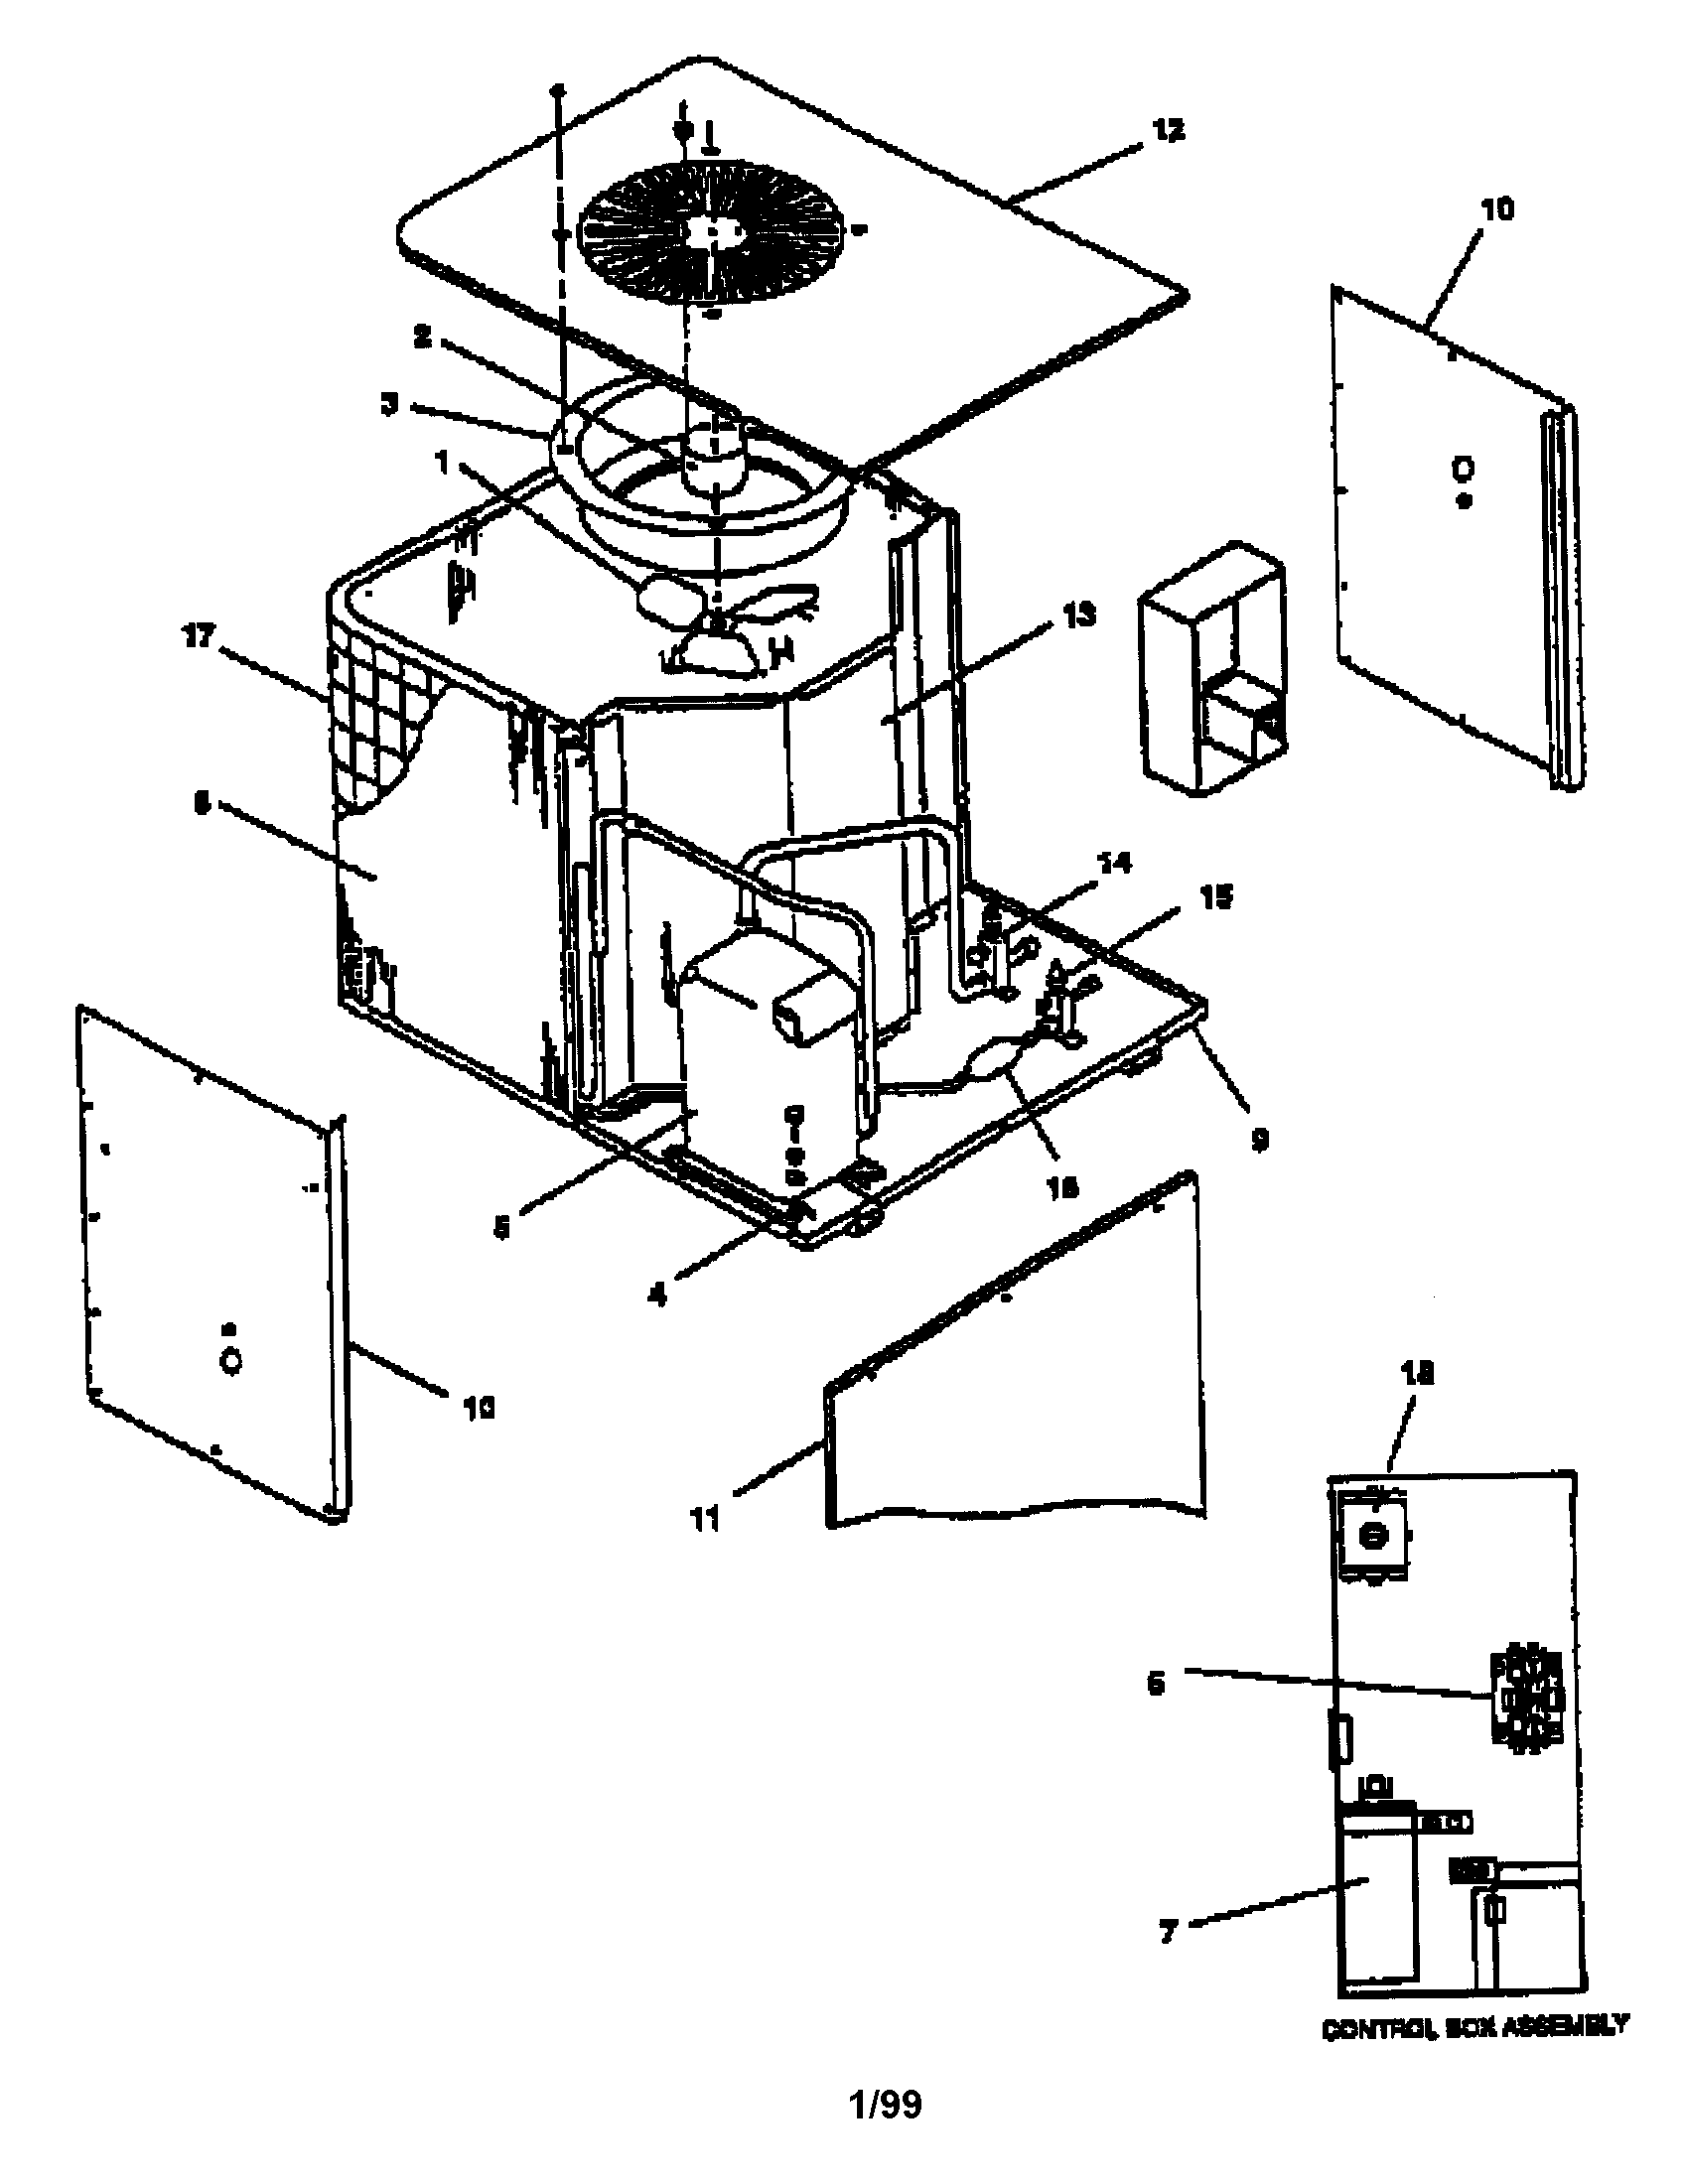 air conditioning components diagram trailer lights wiring goodman central condensing unit parts model ce481gb